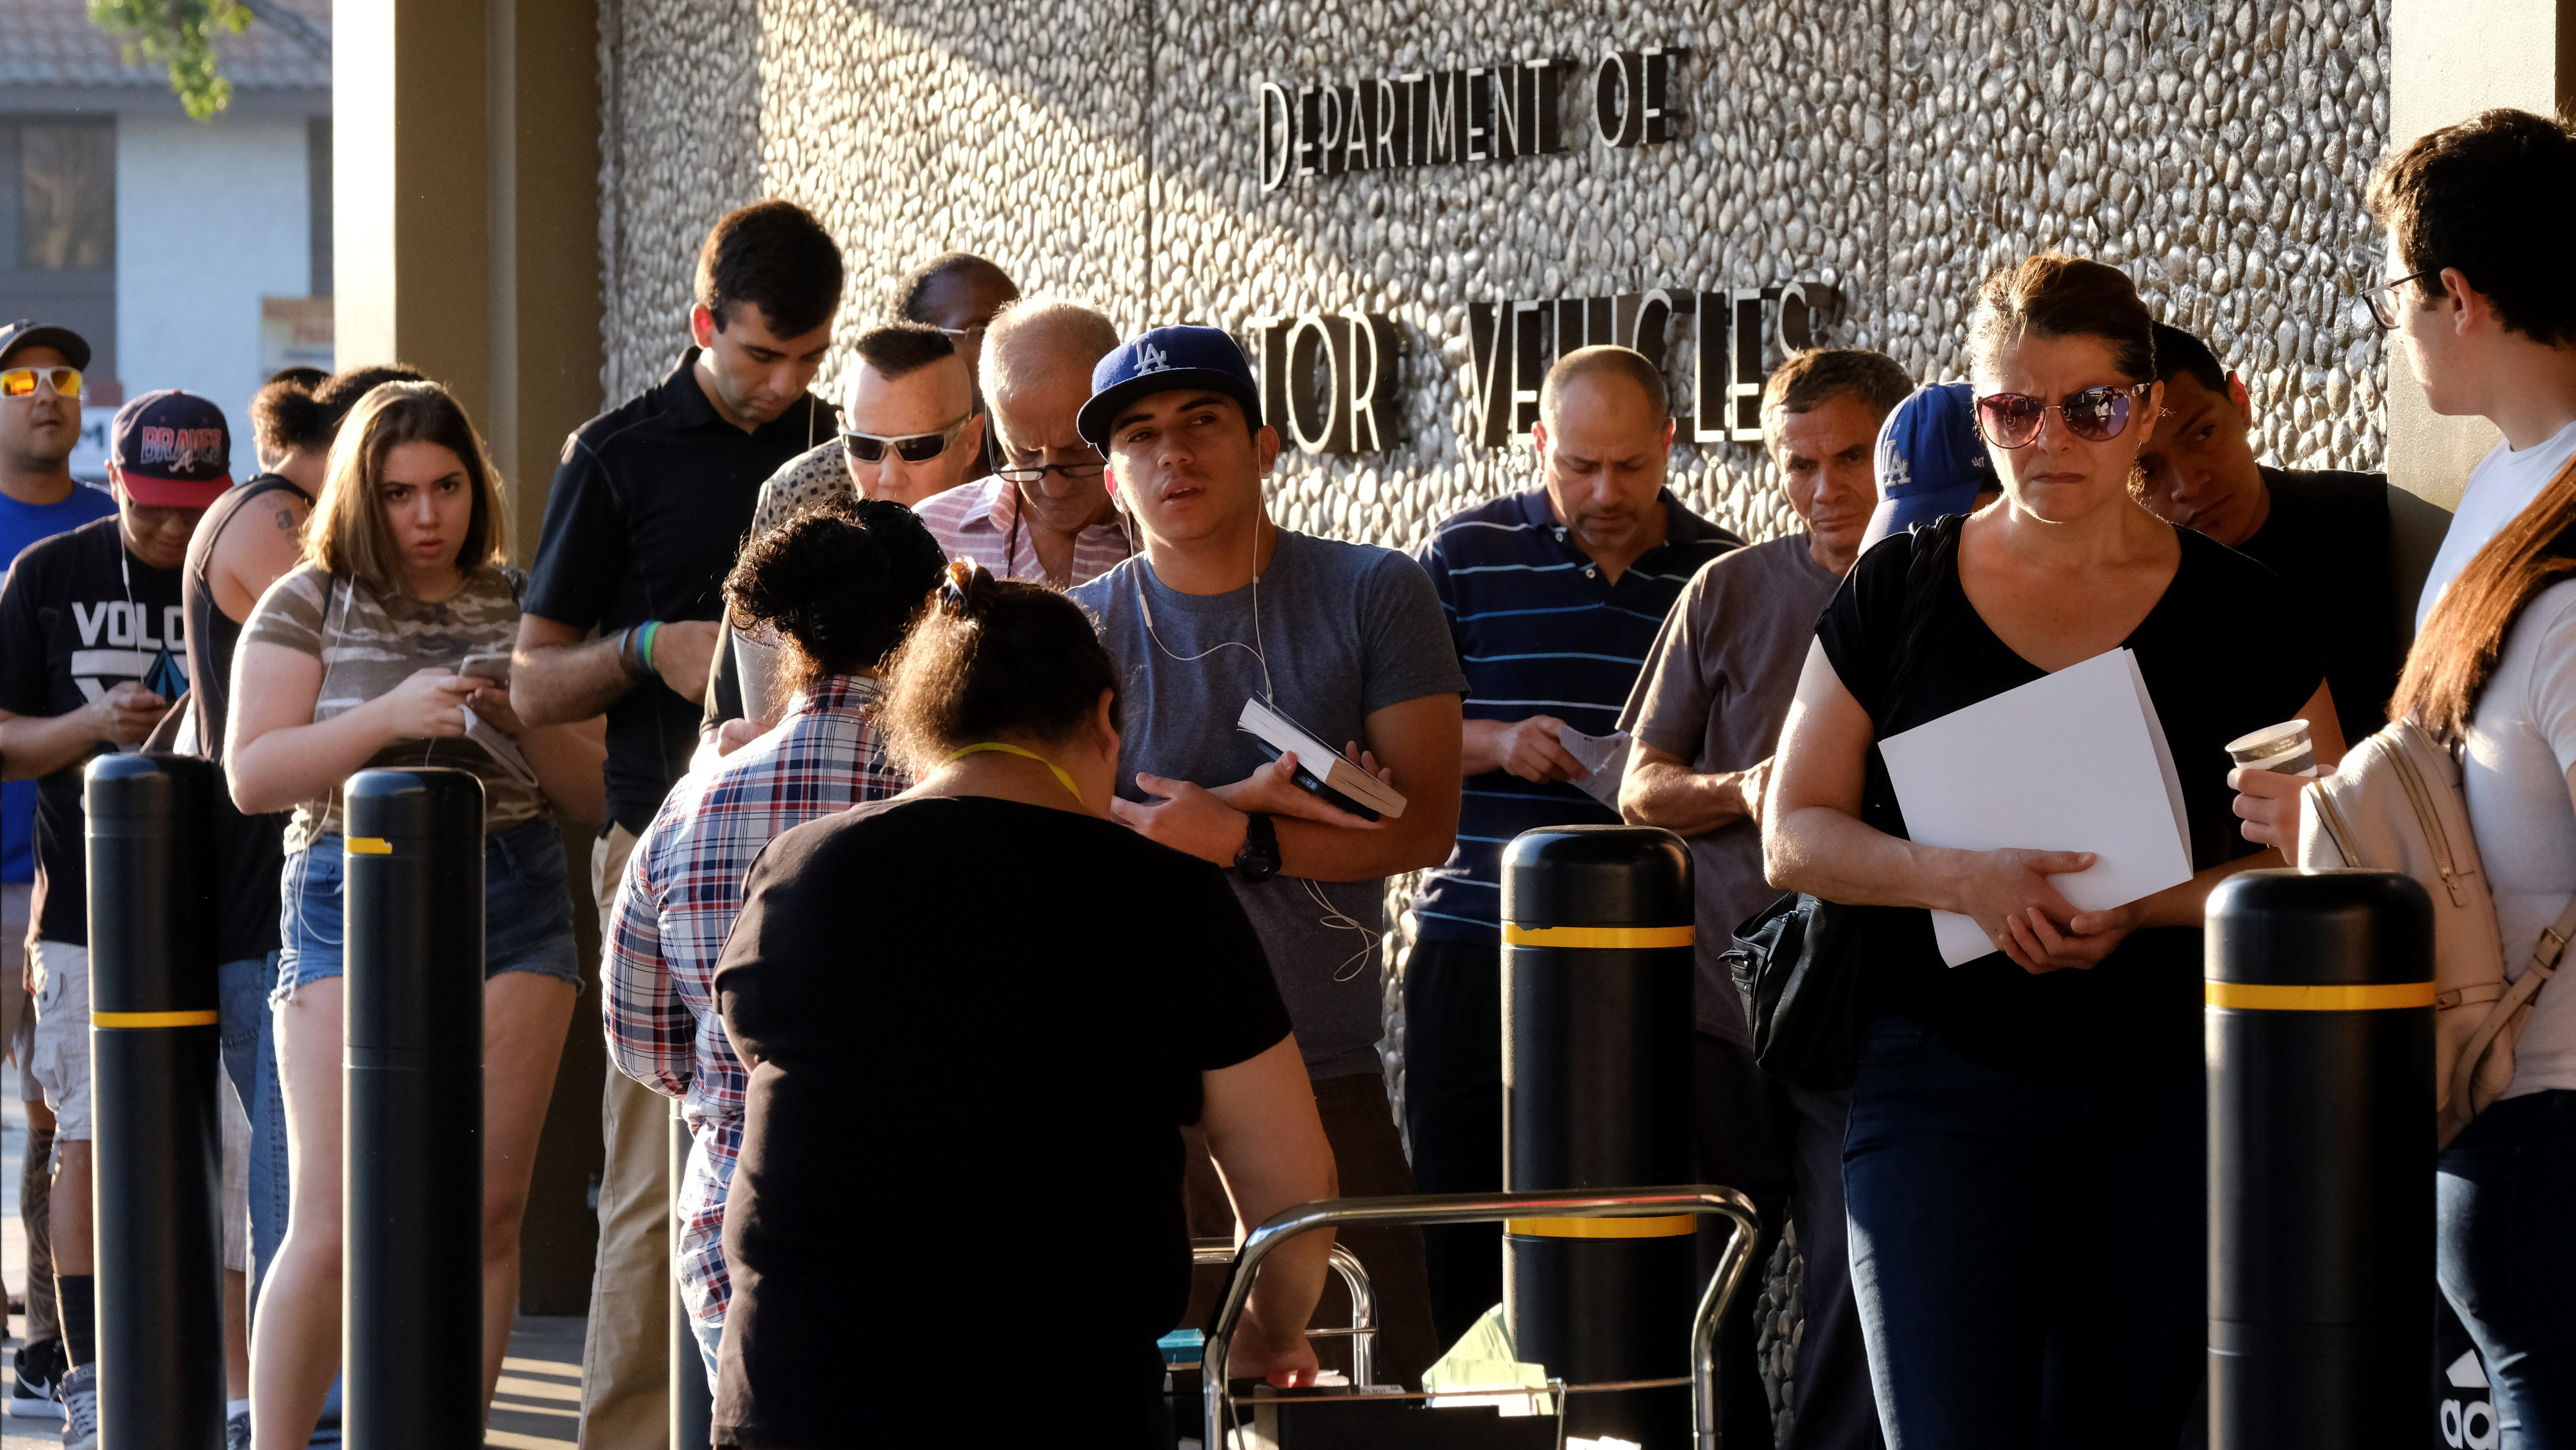 """People line up outside a California Department of Motor Vehicles office prior to opening in Van Nuys on Tuesday. The DMV blames long wait times at its offices on underestimations of the time it takes to process """"Real ID"""" applicants."""